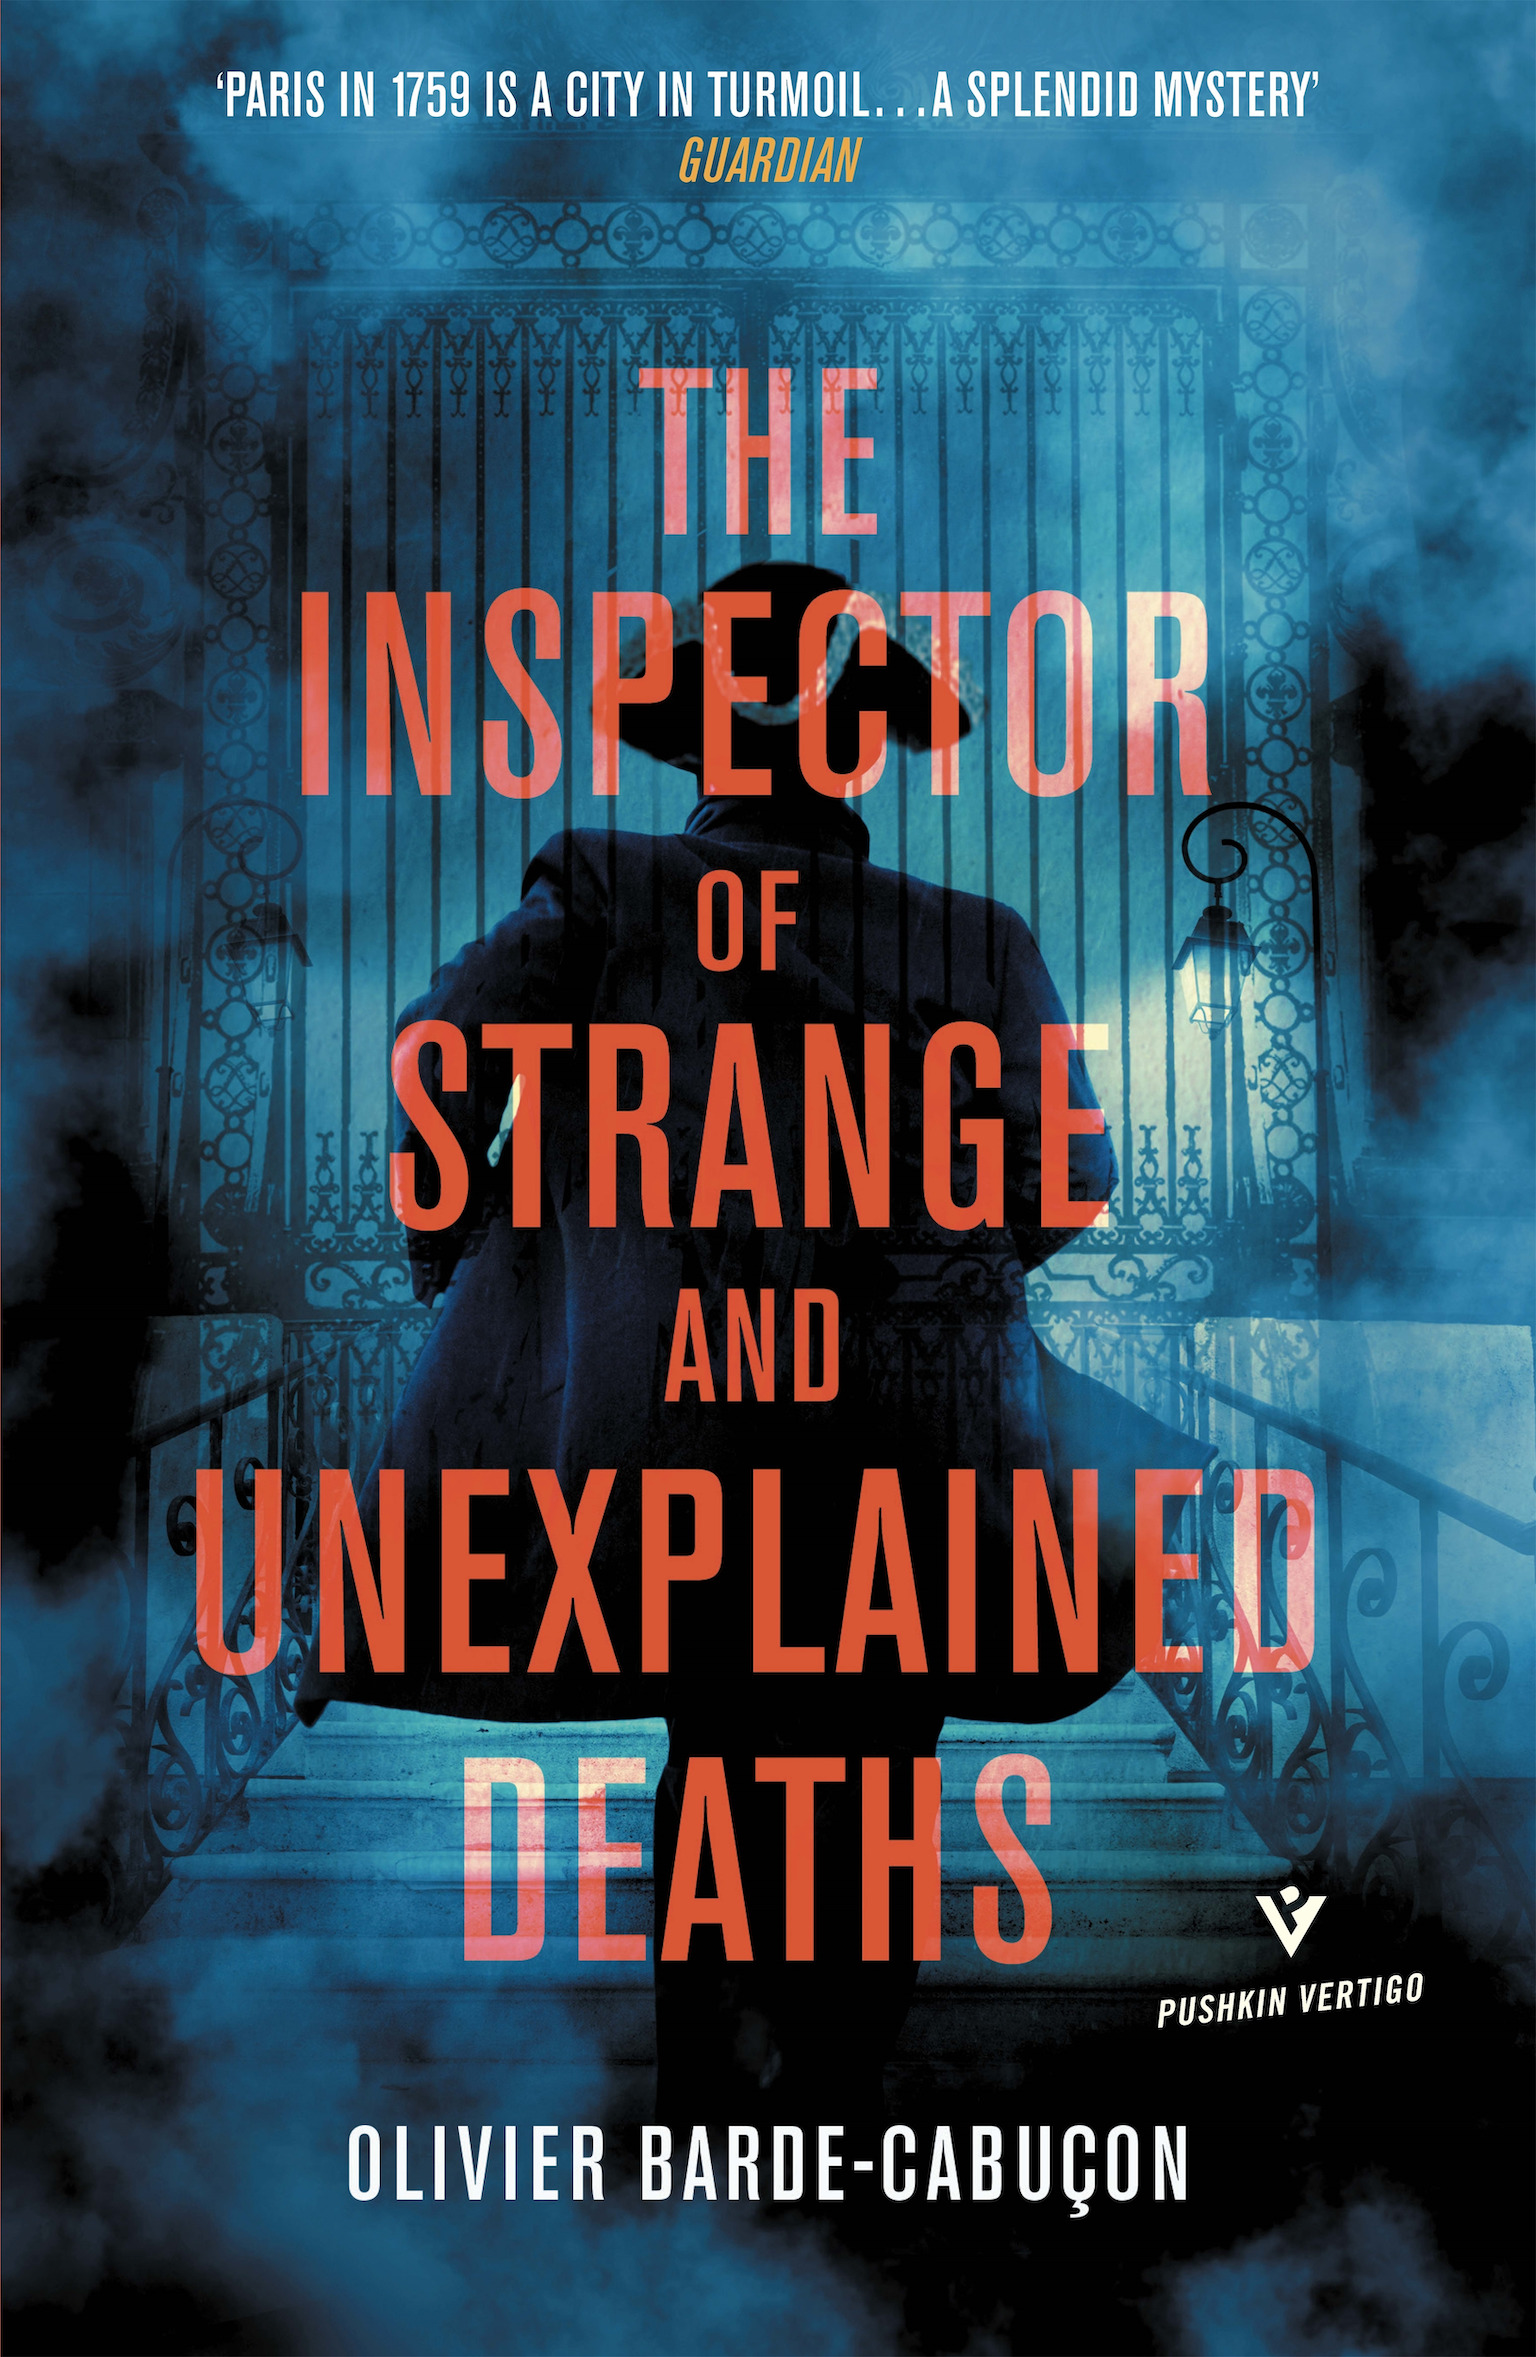 Pushkin Vertigo - The Inspector of Strange and Unexplained Deaths | Thriller